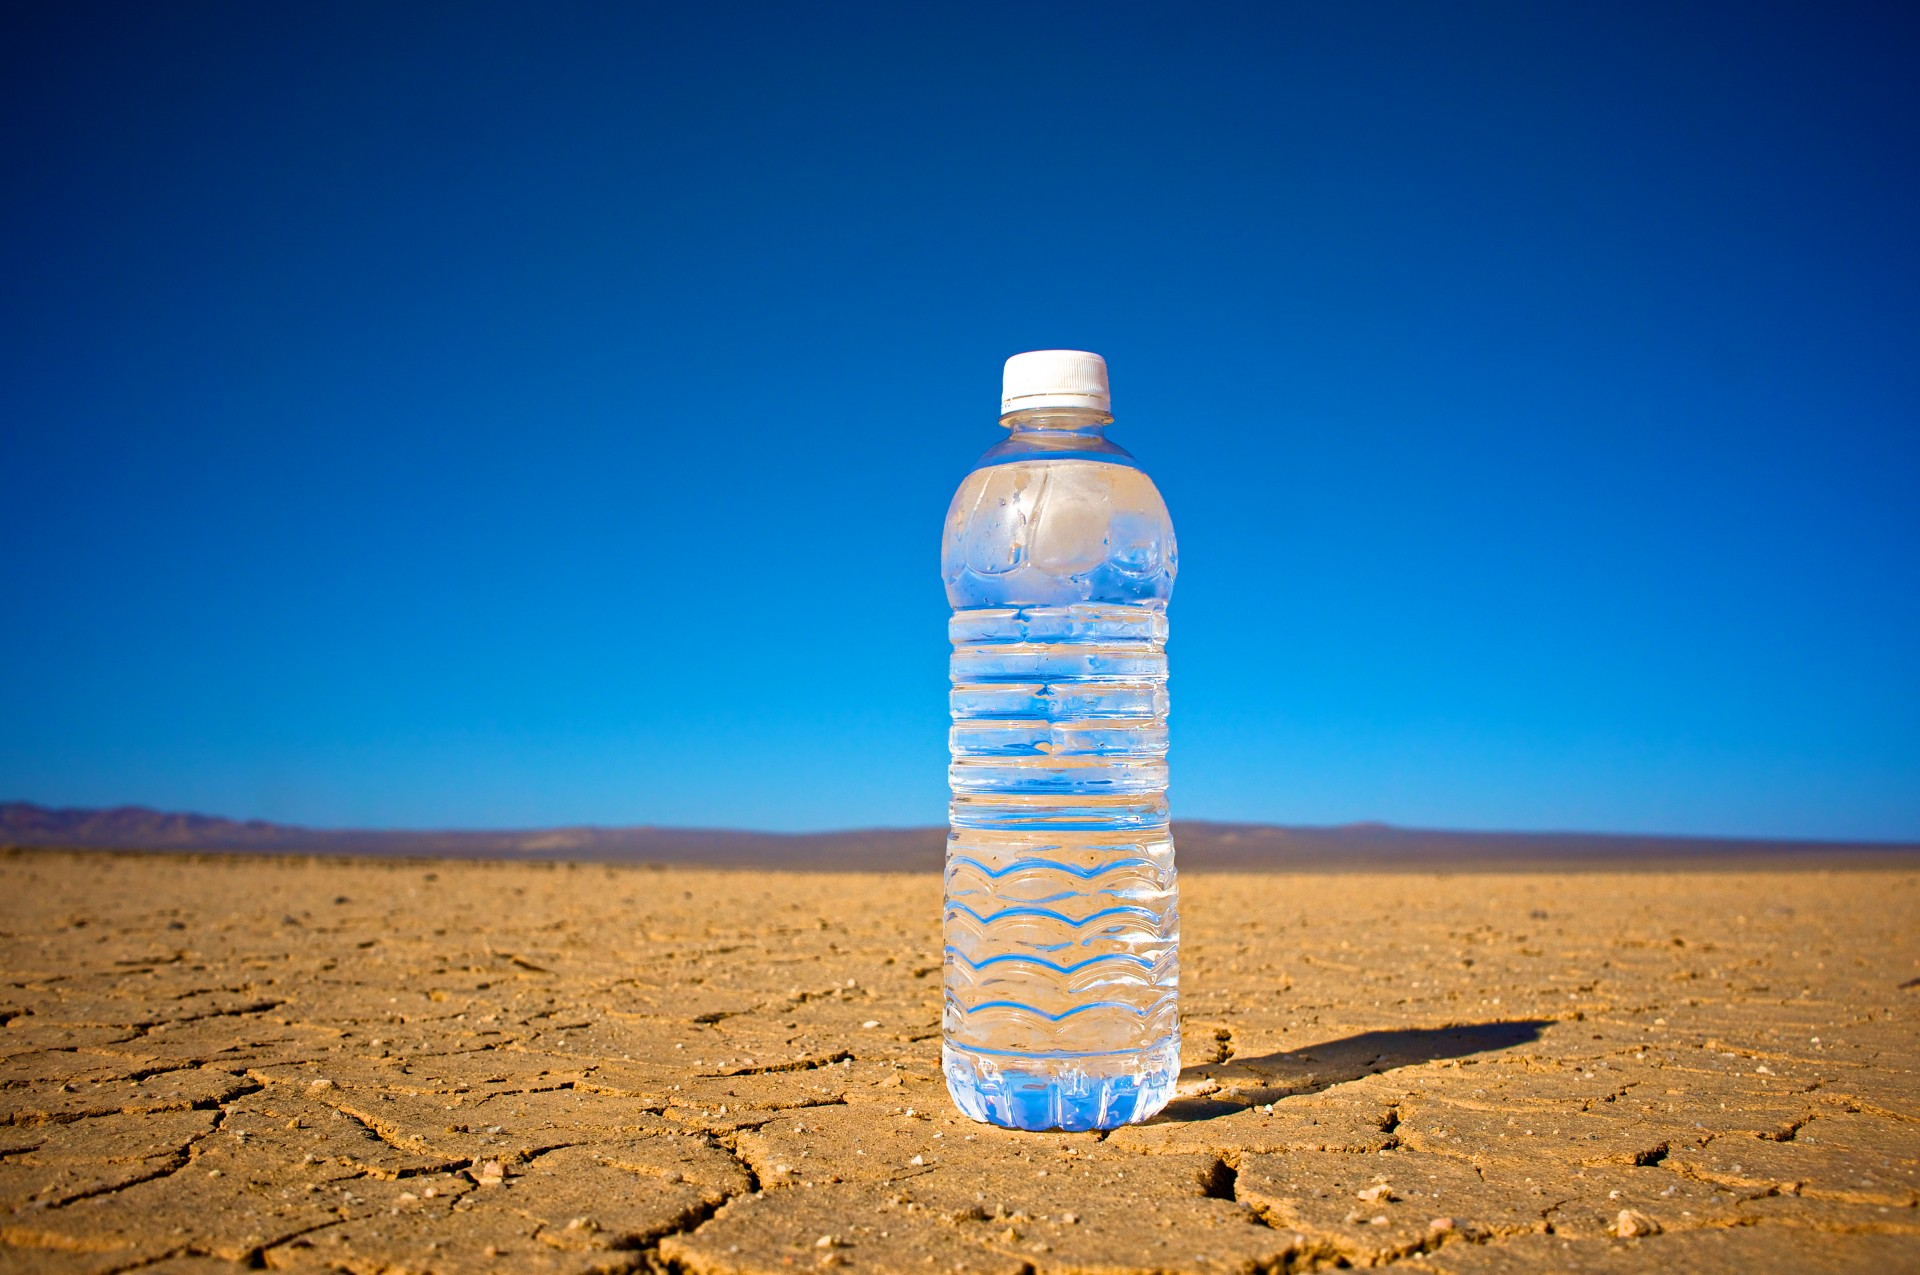 Siphoning off precious groundwater to sell in plastic bottles does all kinds of wrong.